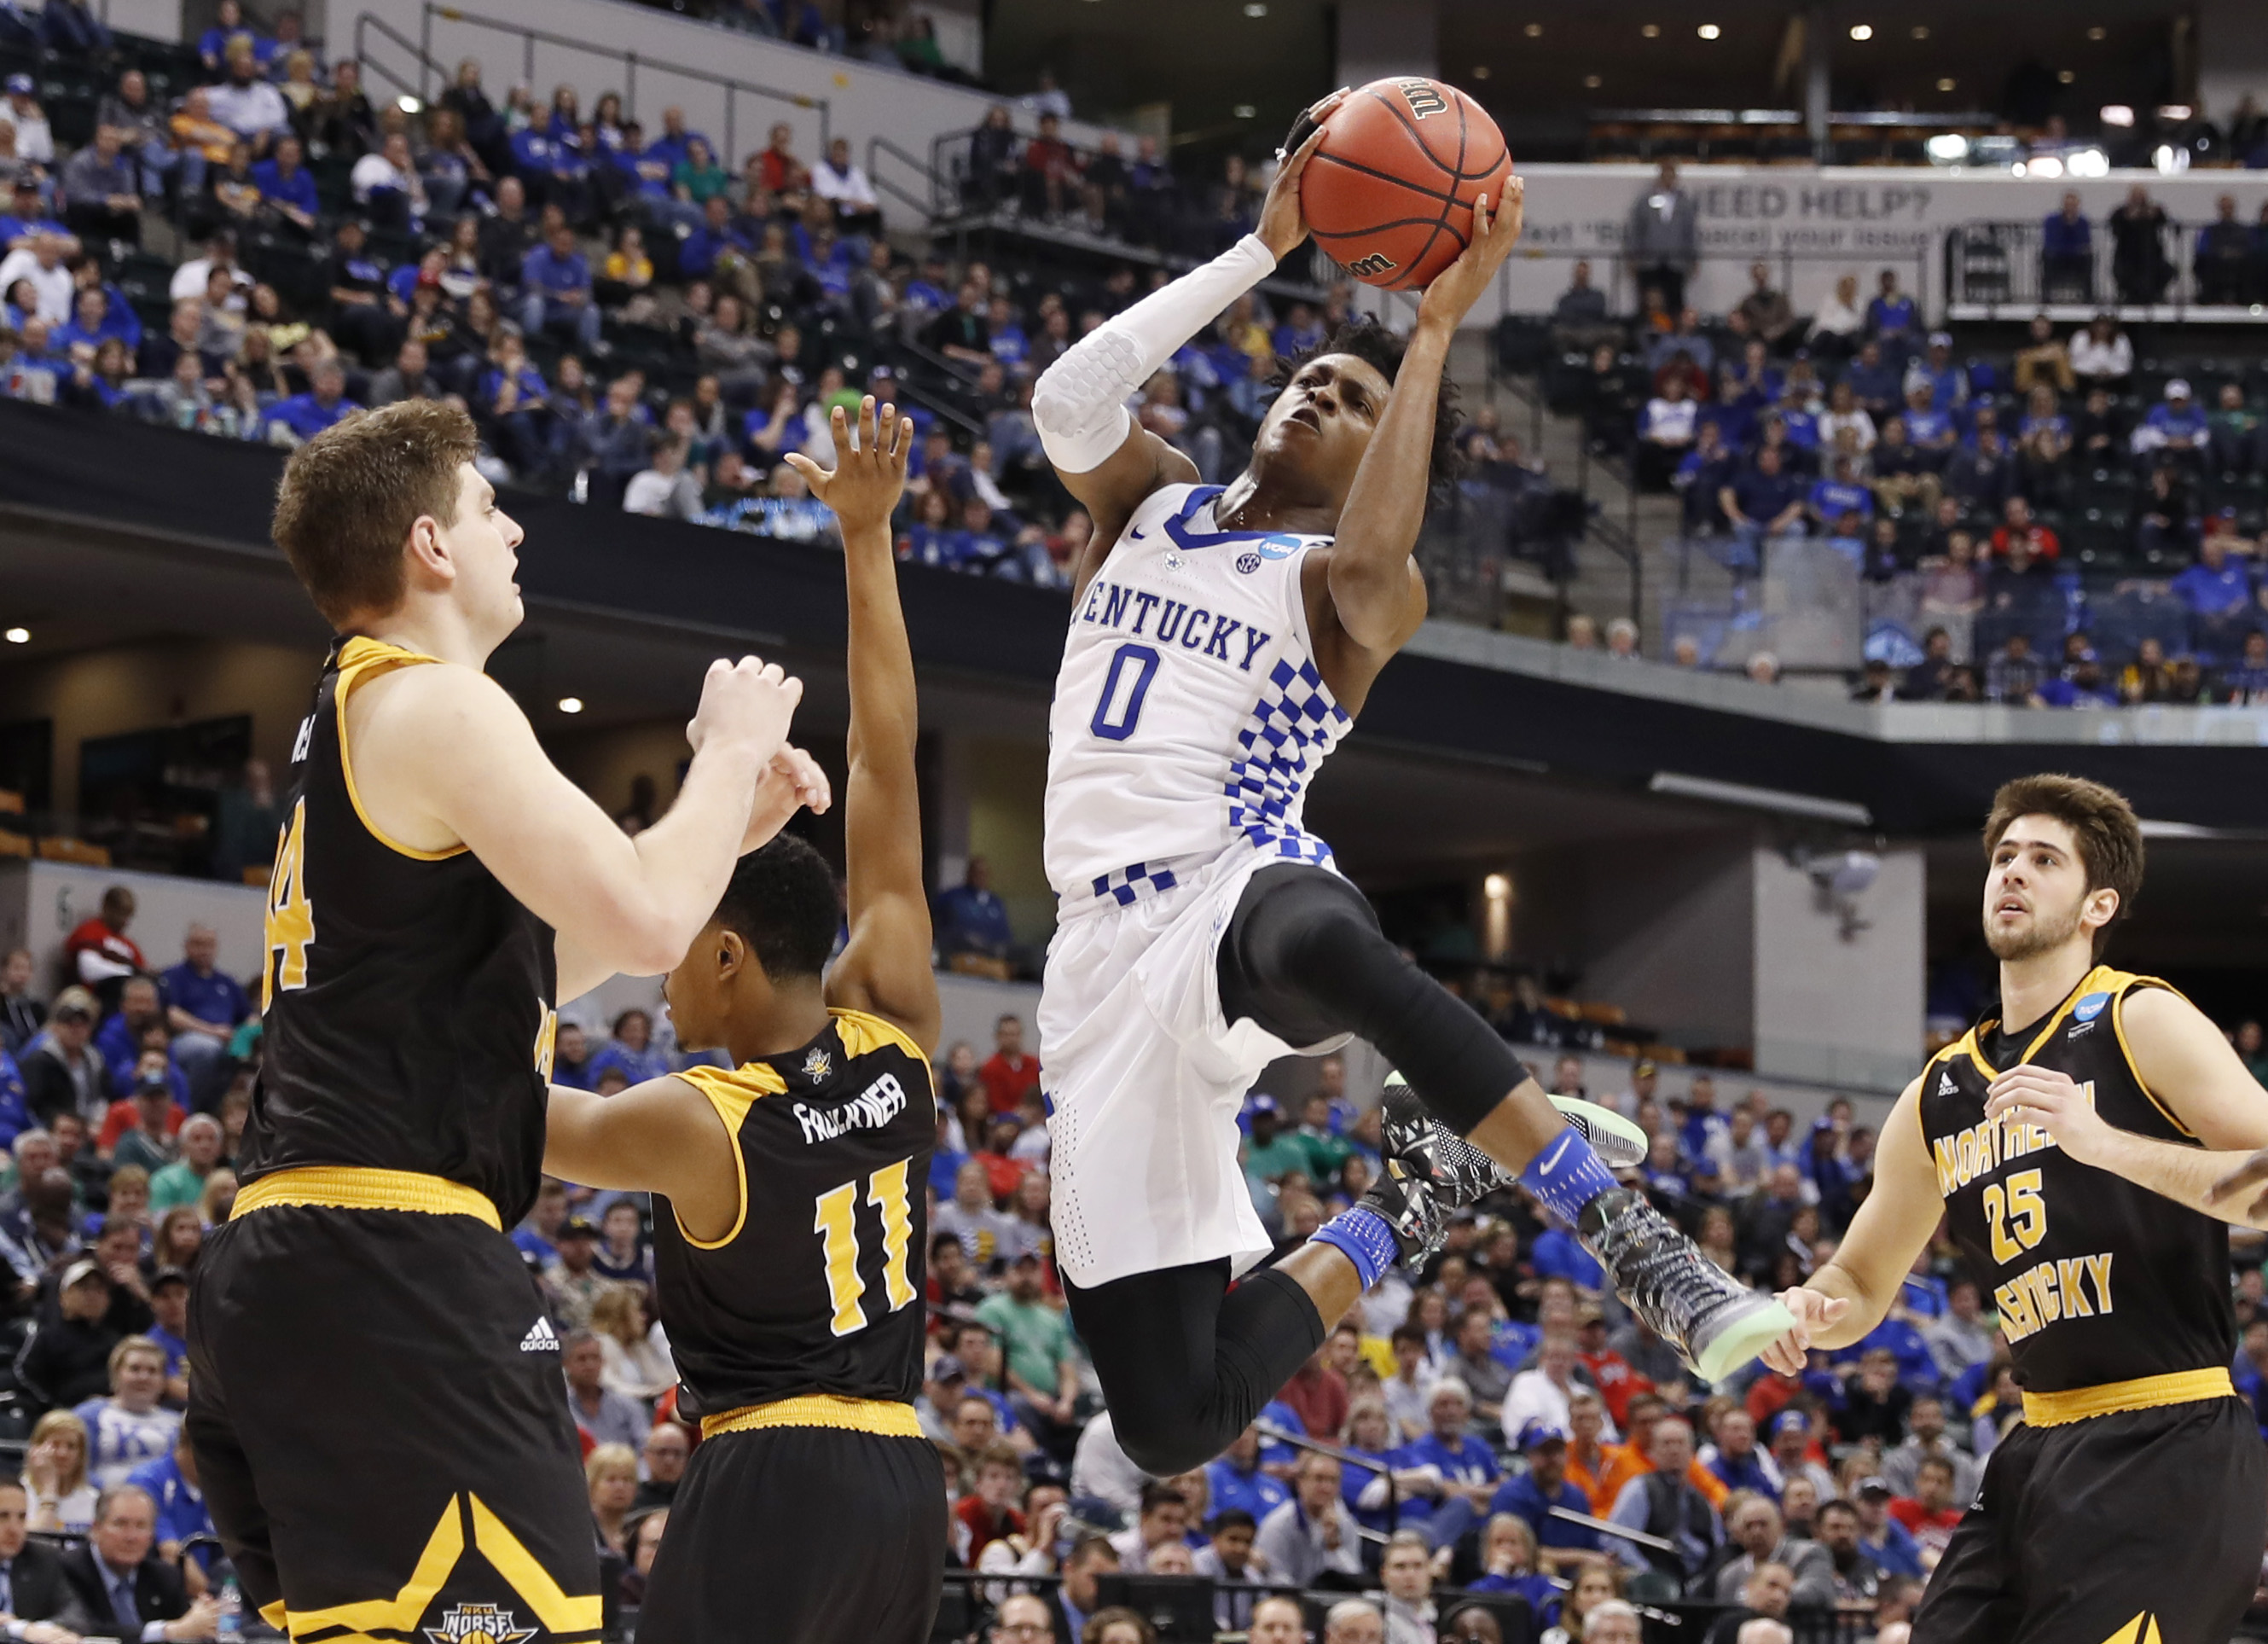 Kentucky Basketball Our First Look At The New Wildcats In: New York Knicks: Early April 2017 NBA Mock Draft